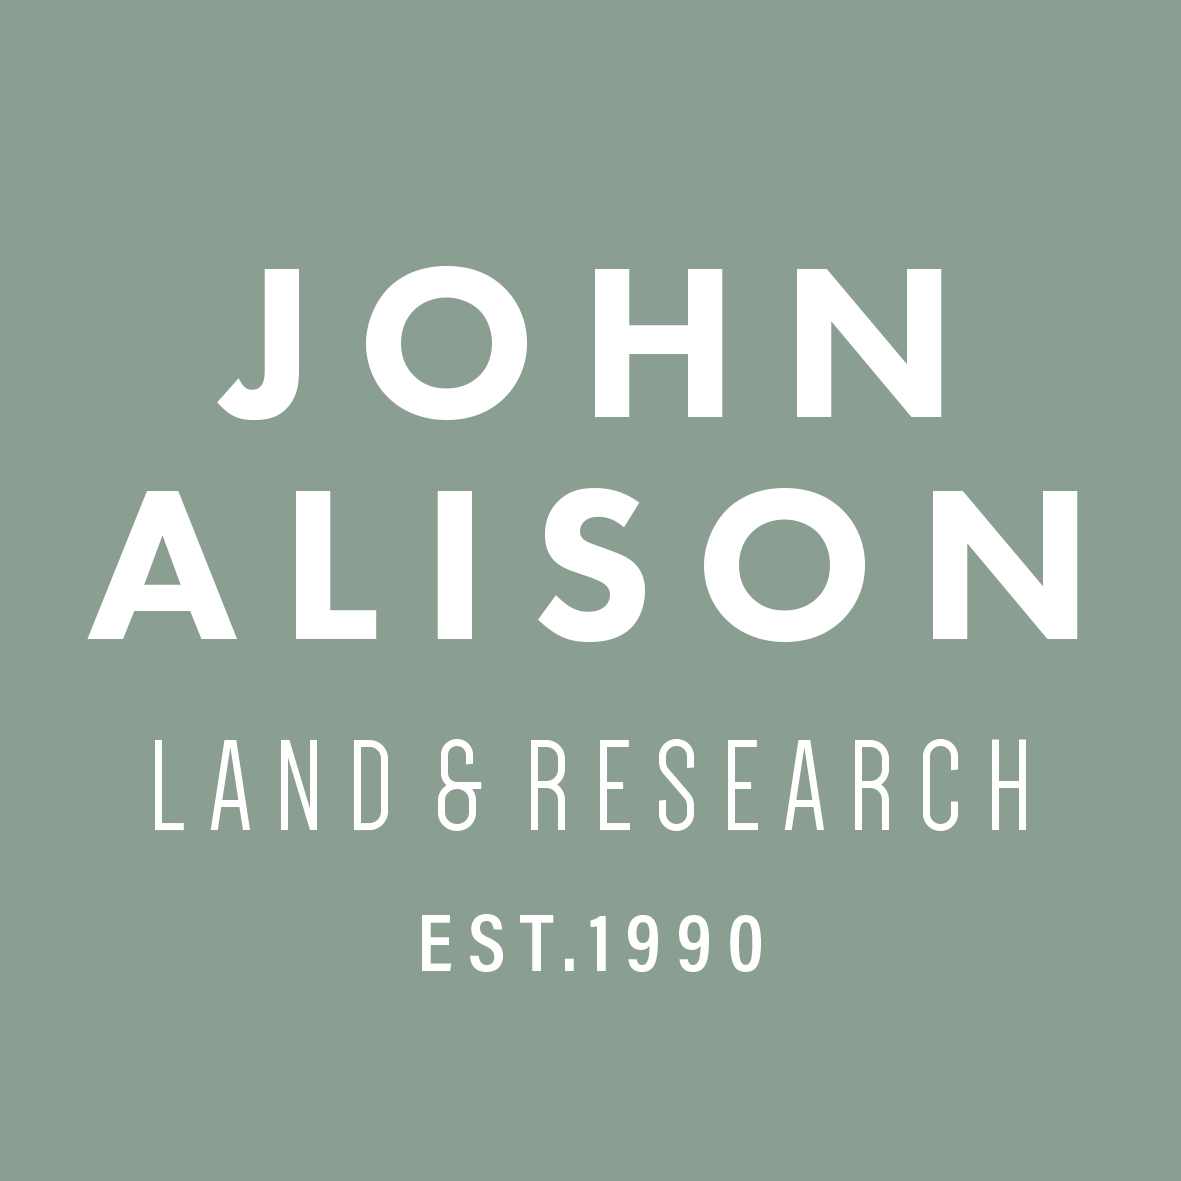 John Alison Land & Research